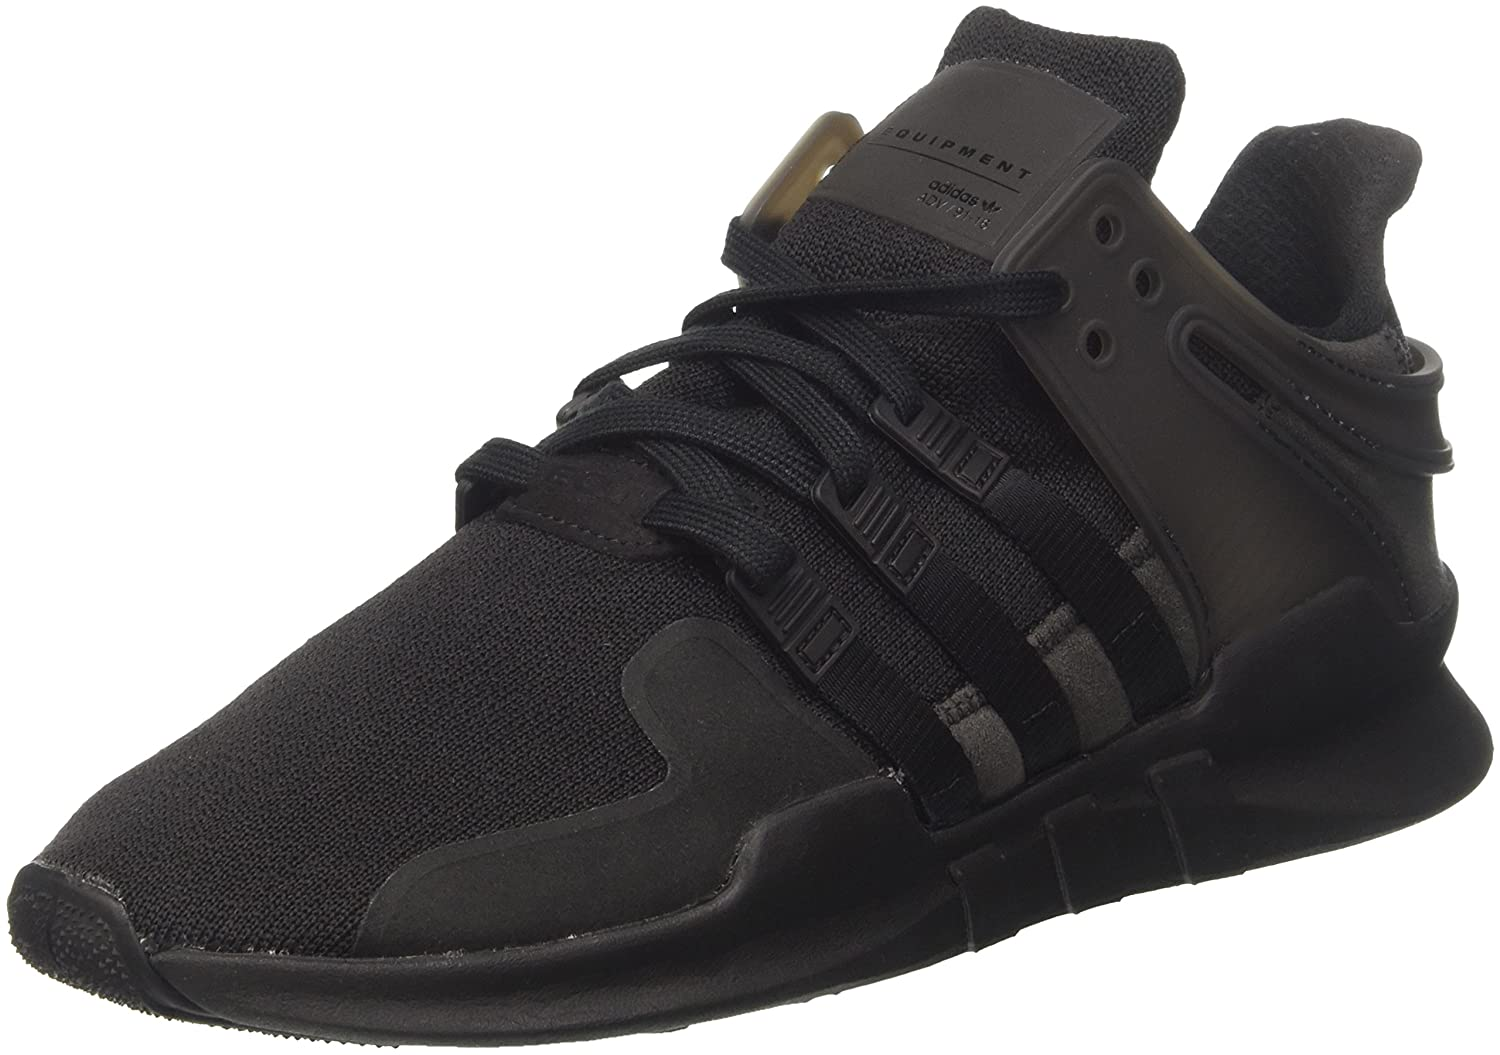 half off 4df53 14cf9 Adidas Eqt Support Adv Mens Sneakers Black the best choice 9